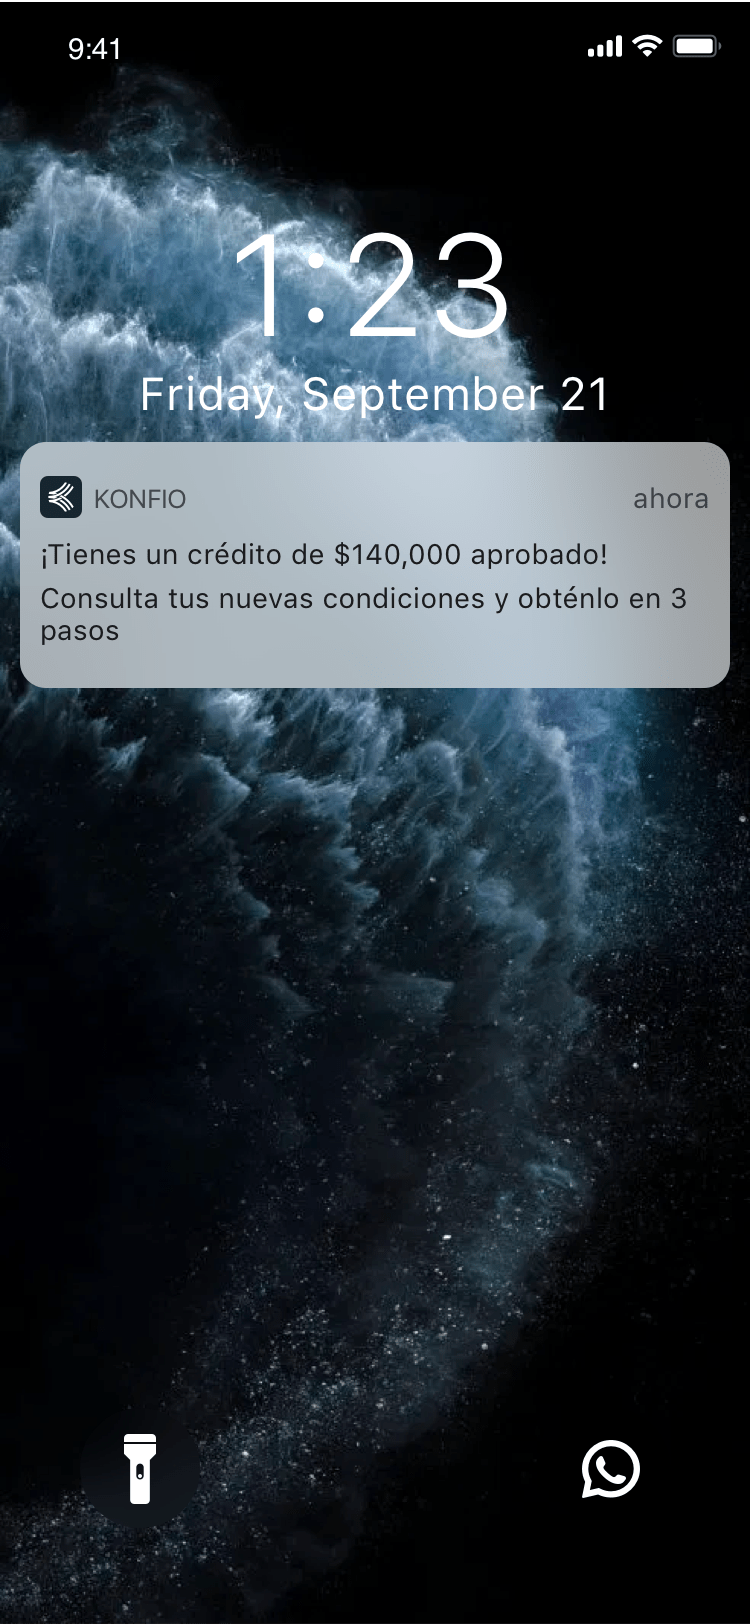 Konfío app notificaciones push